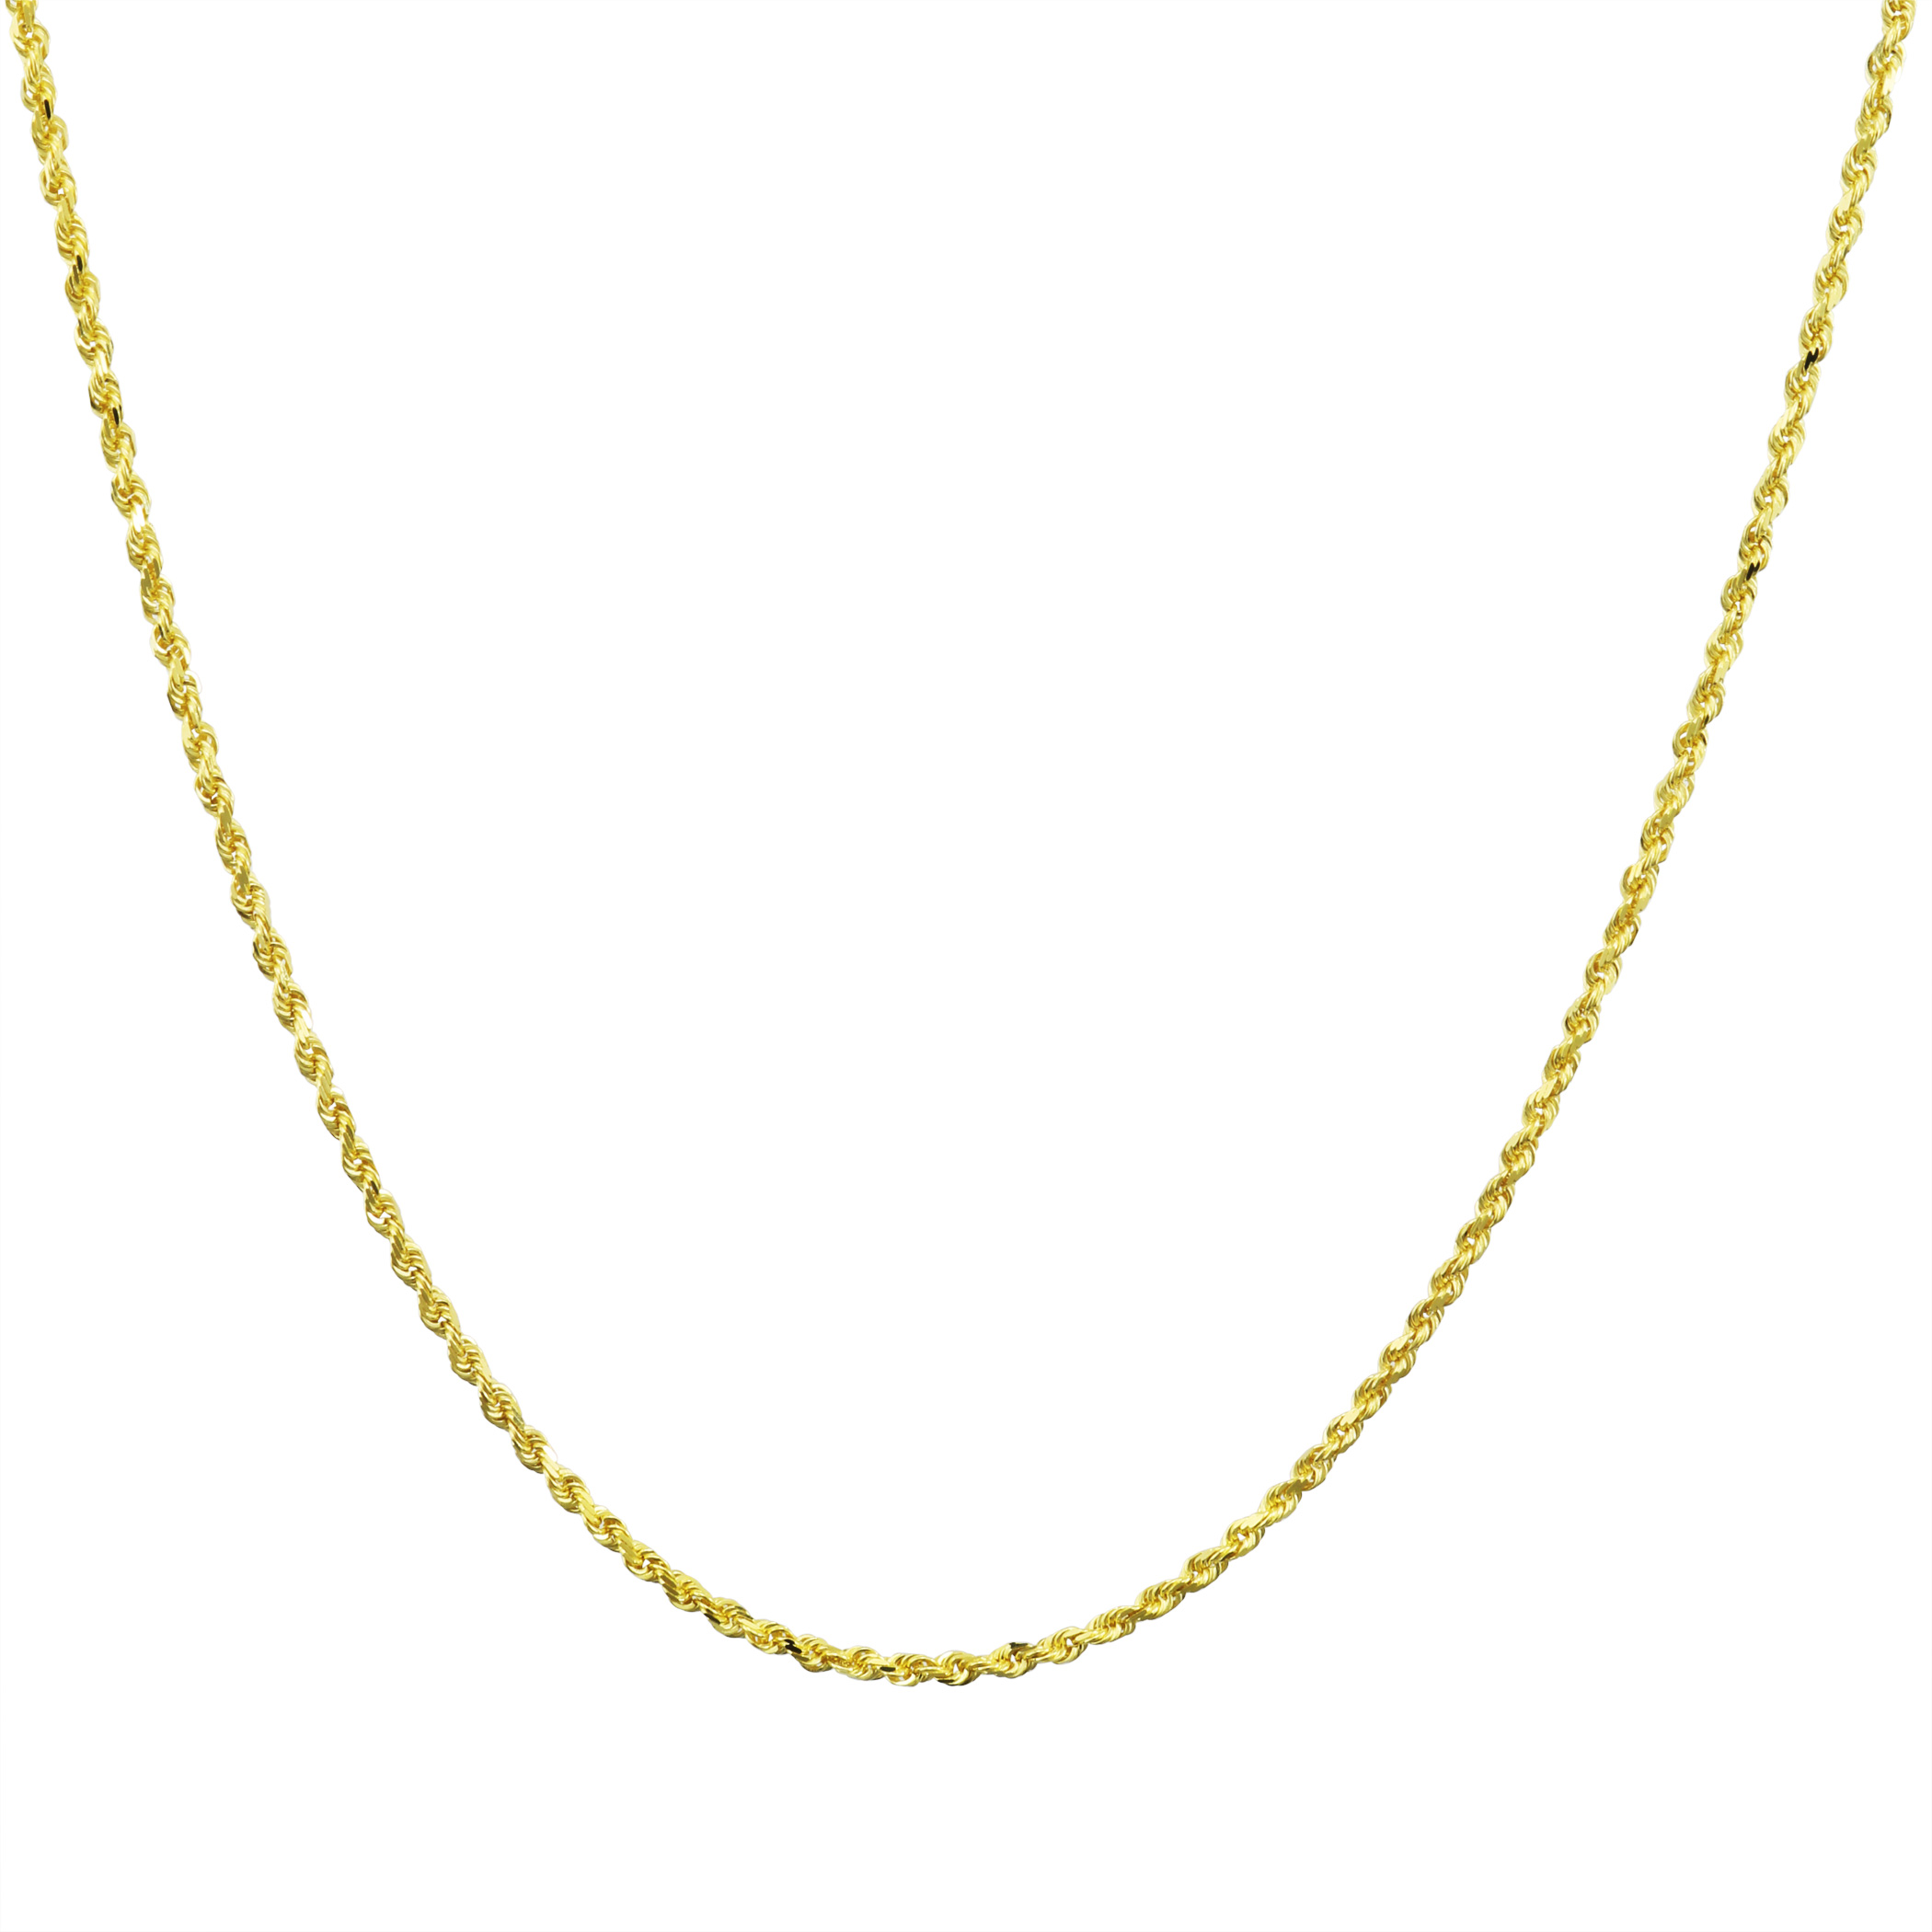 14K-Yellow-Gold-Solid-1-8mm-Diamond-Cut-Rope-Link-Chain-Pendant-Necklace-16-034-30-034 thumbnail 21